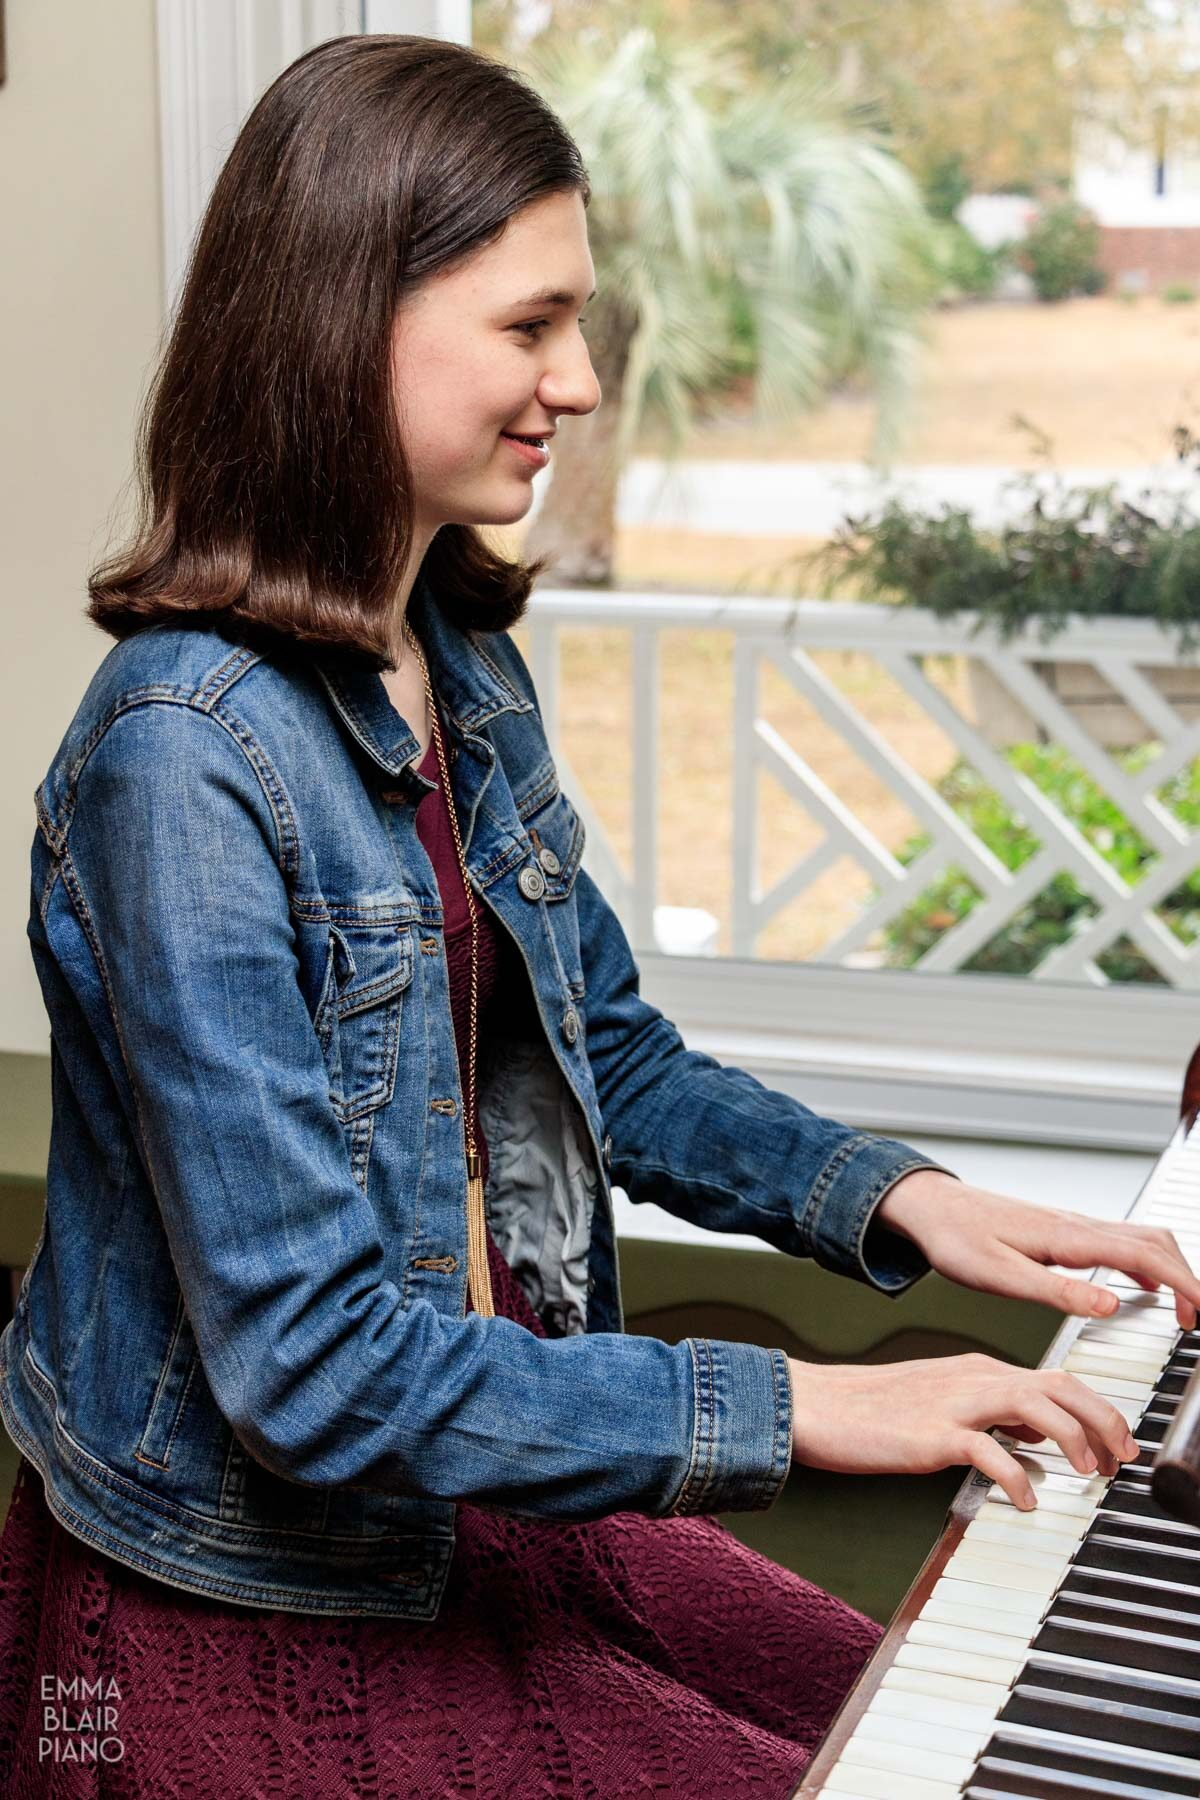 teenage girl playing the piano and smiling